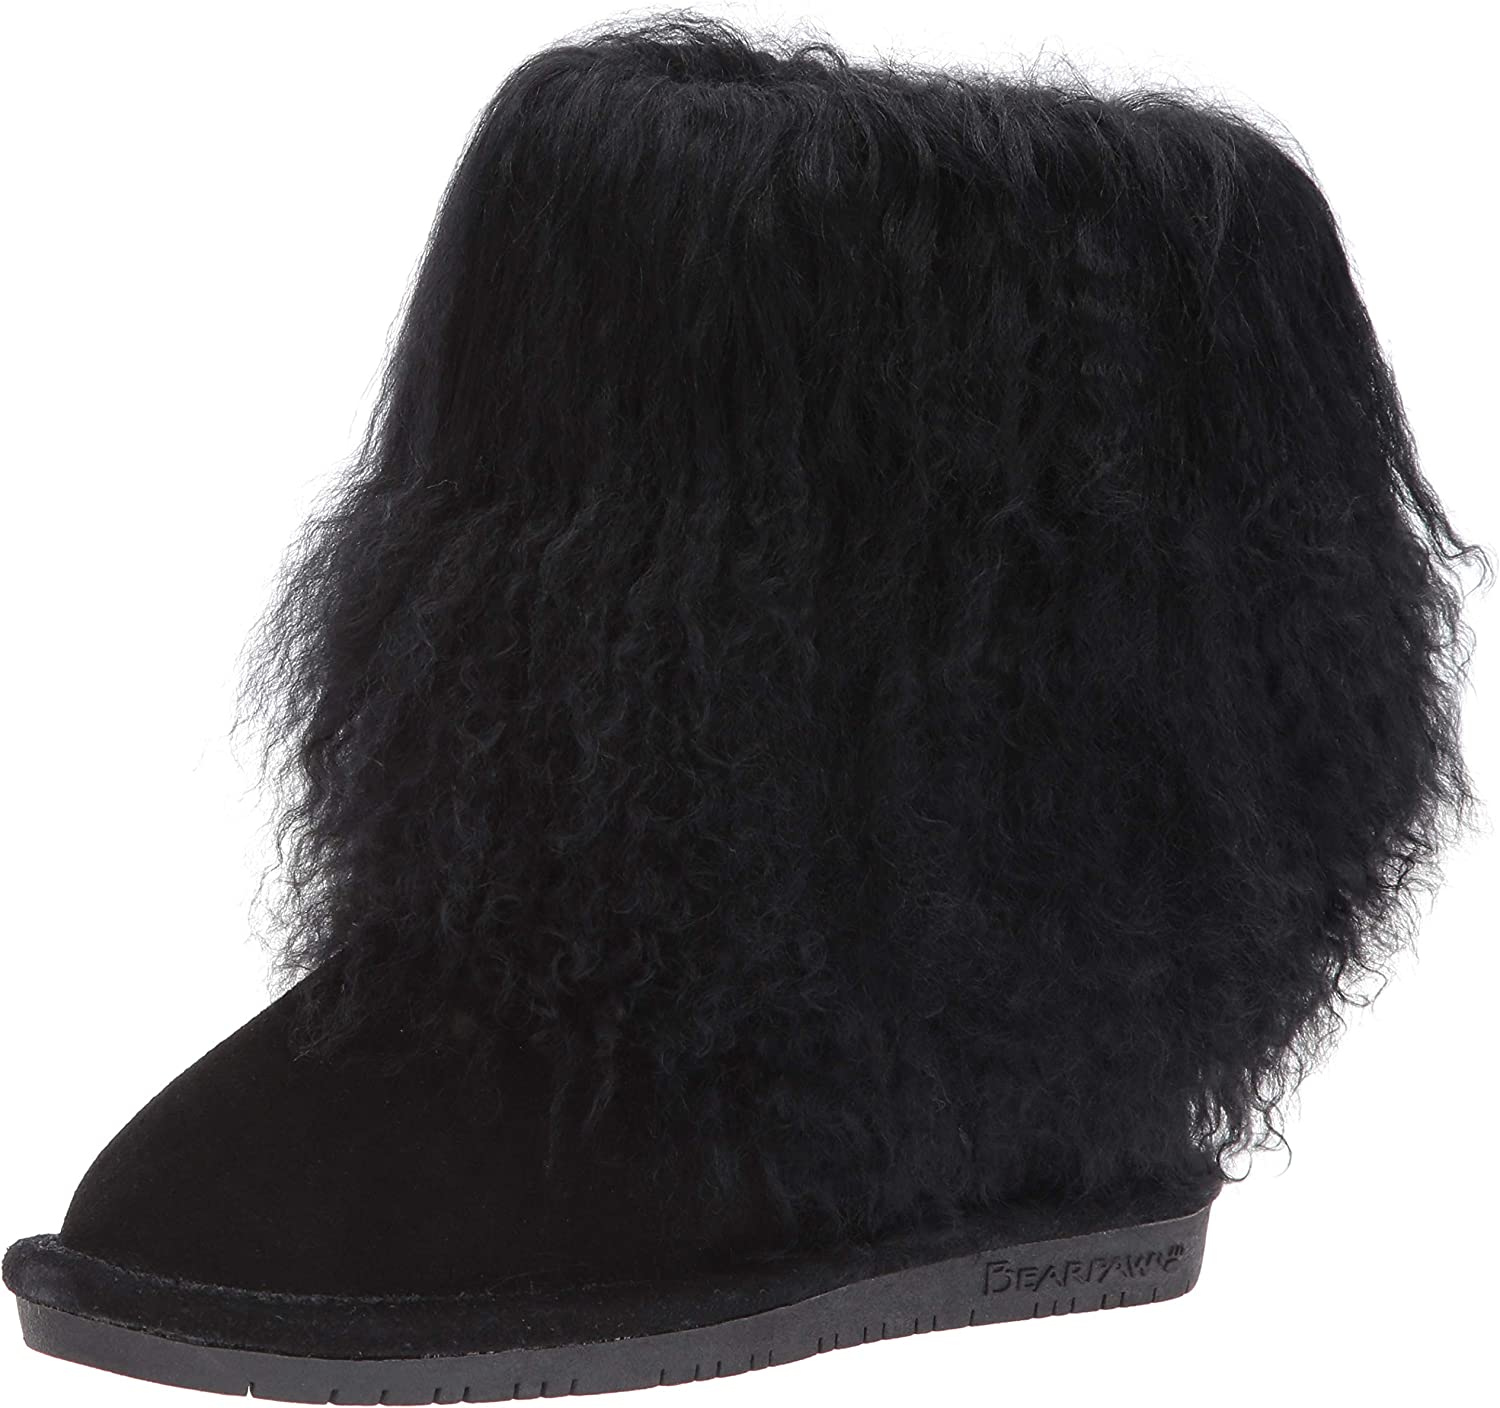 Limited price BEARPAW Boo Youth New products, world's highest quality popular! Boot